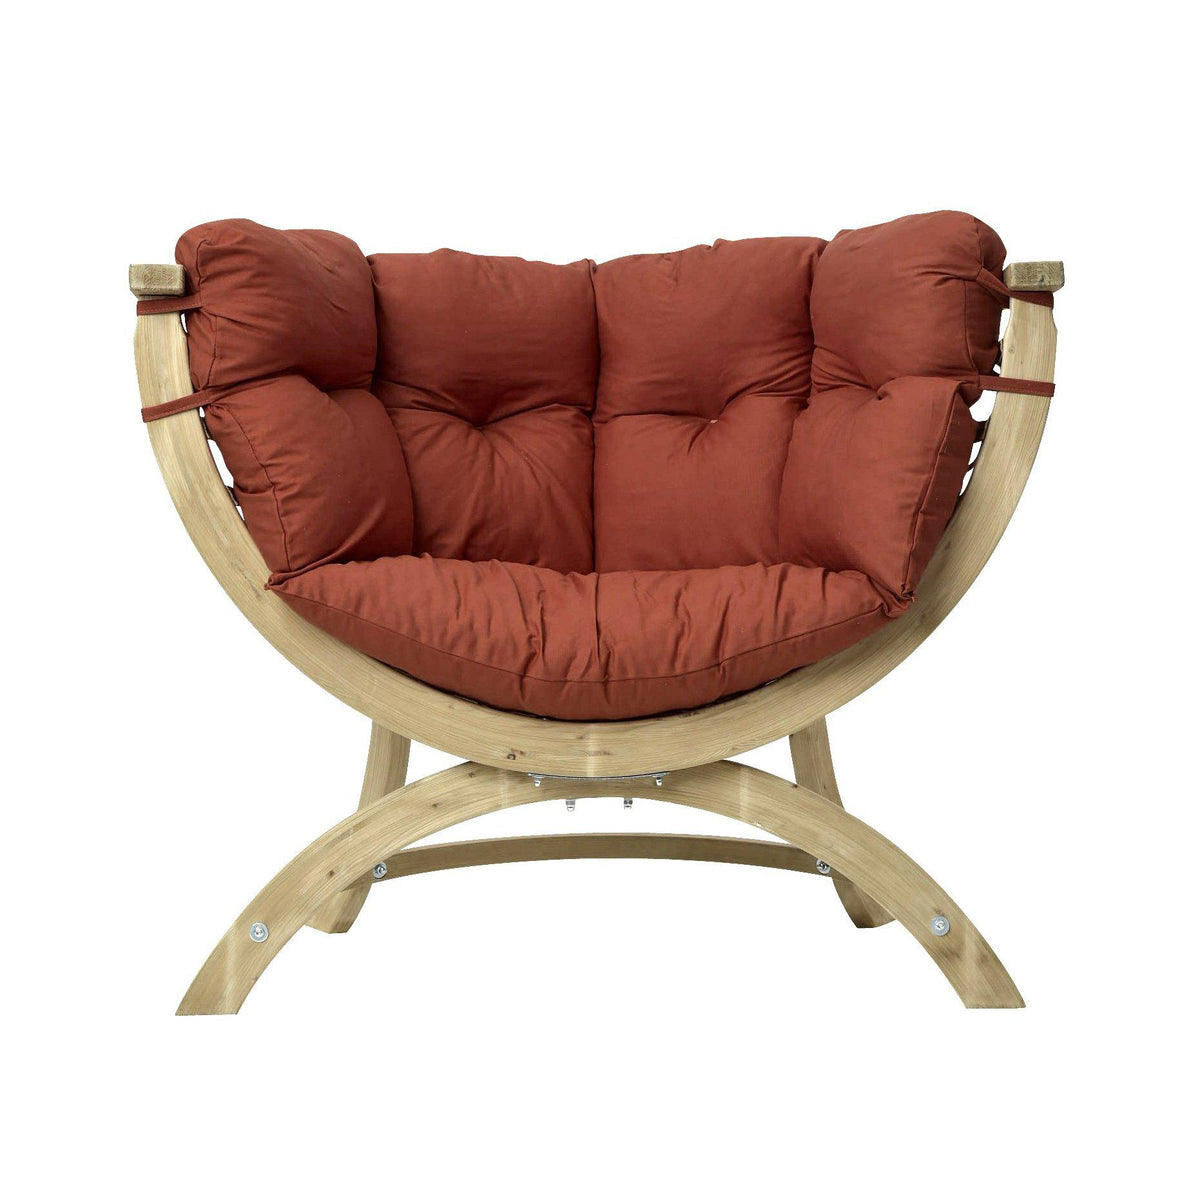 Siena UNO Chair, Terracotta, from Byer of Maine